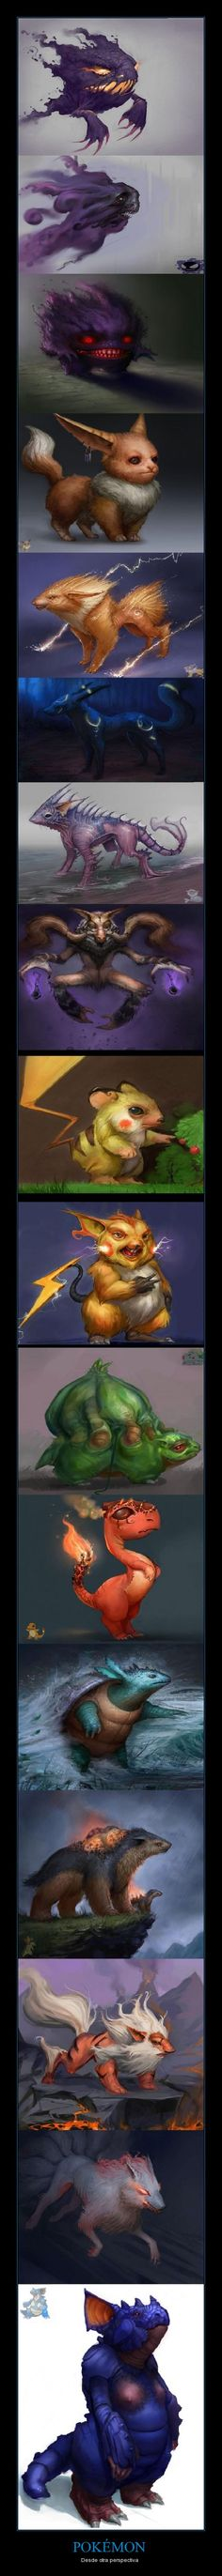 Pokemon, realistic illustrations